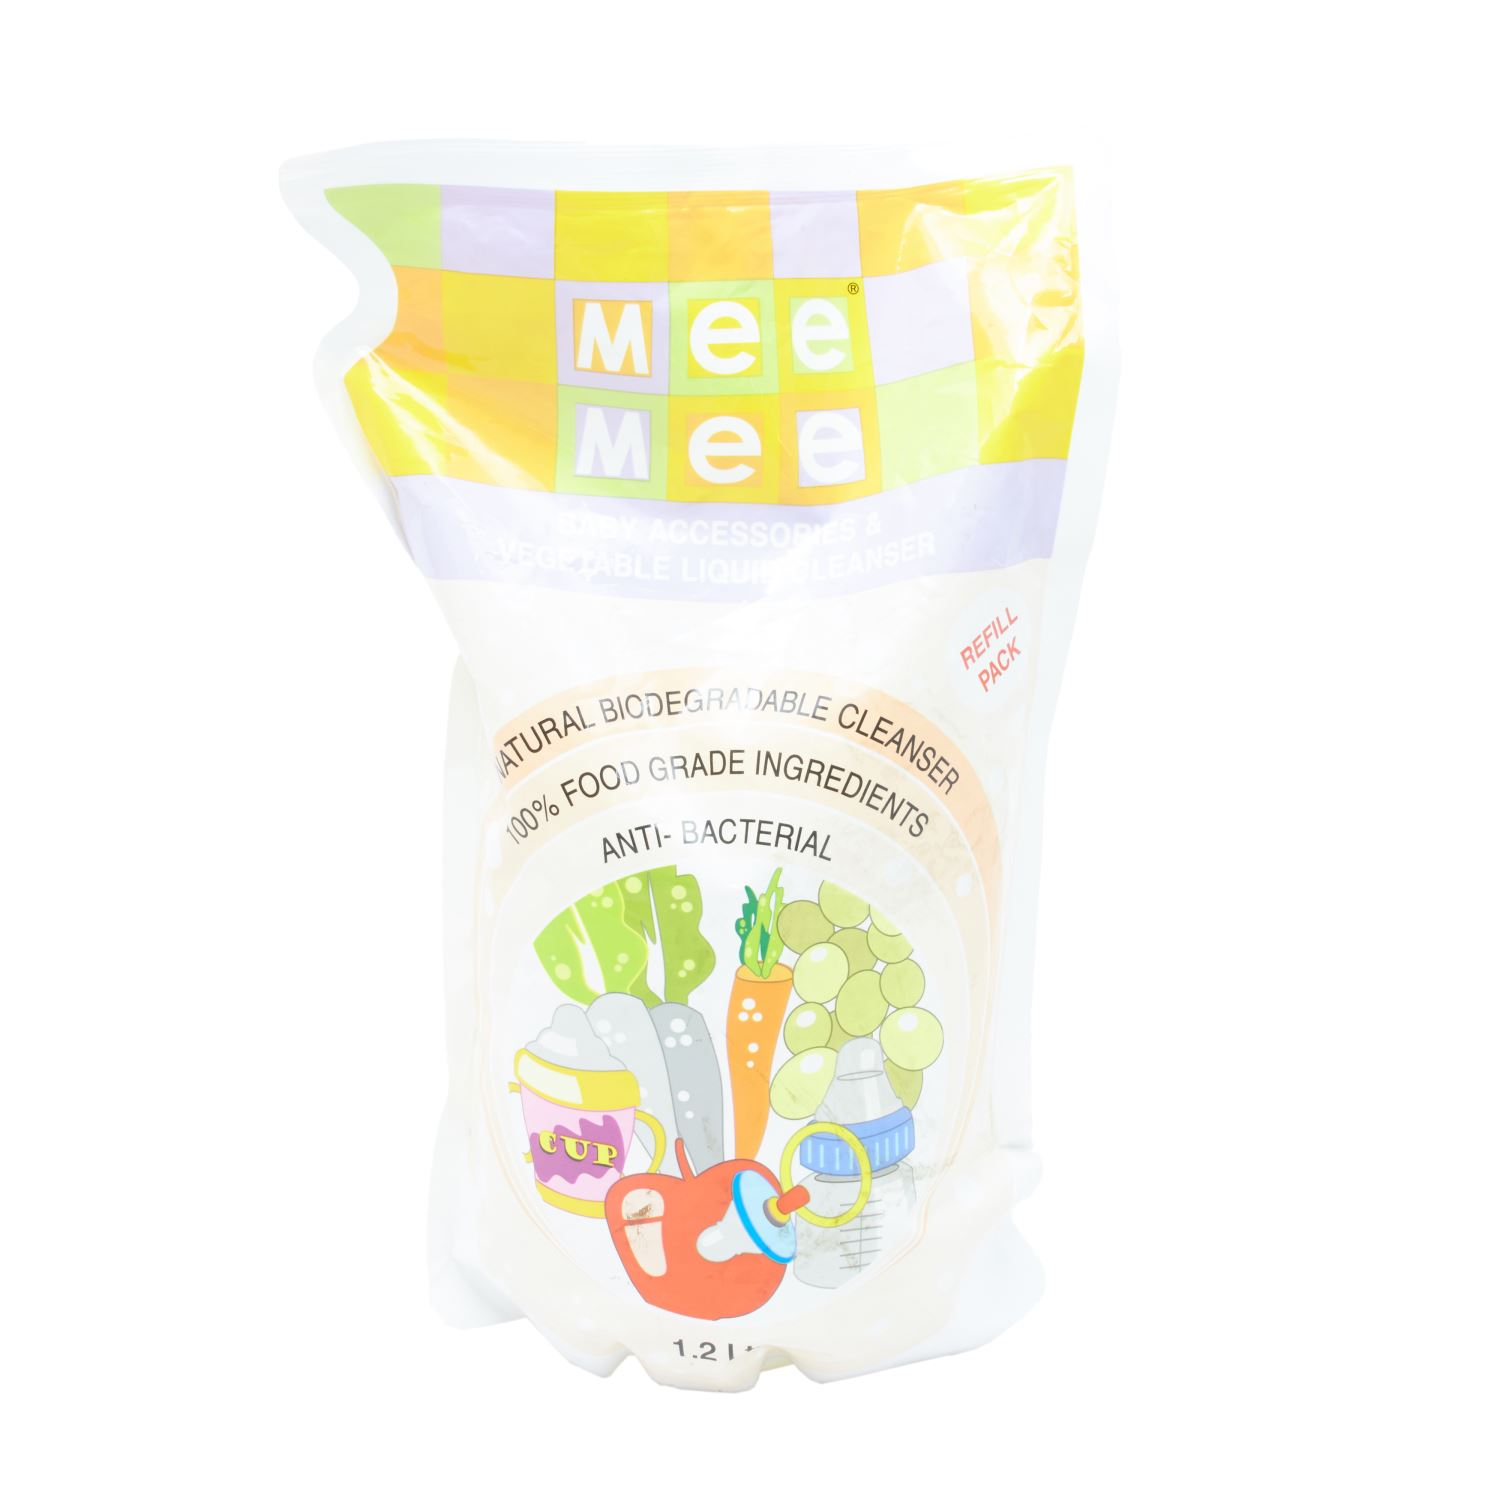 Mee Mee MM 1304 Vegetable Liquid Cleanser - 1.2 L